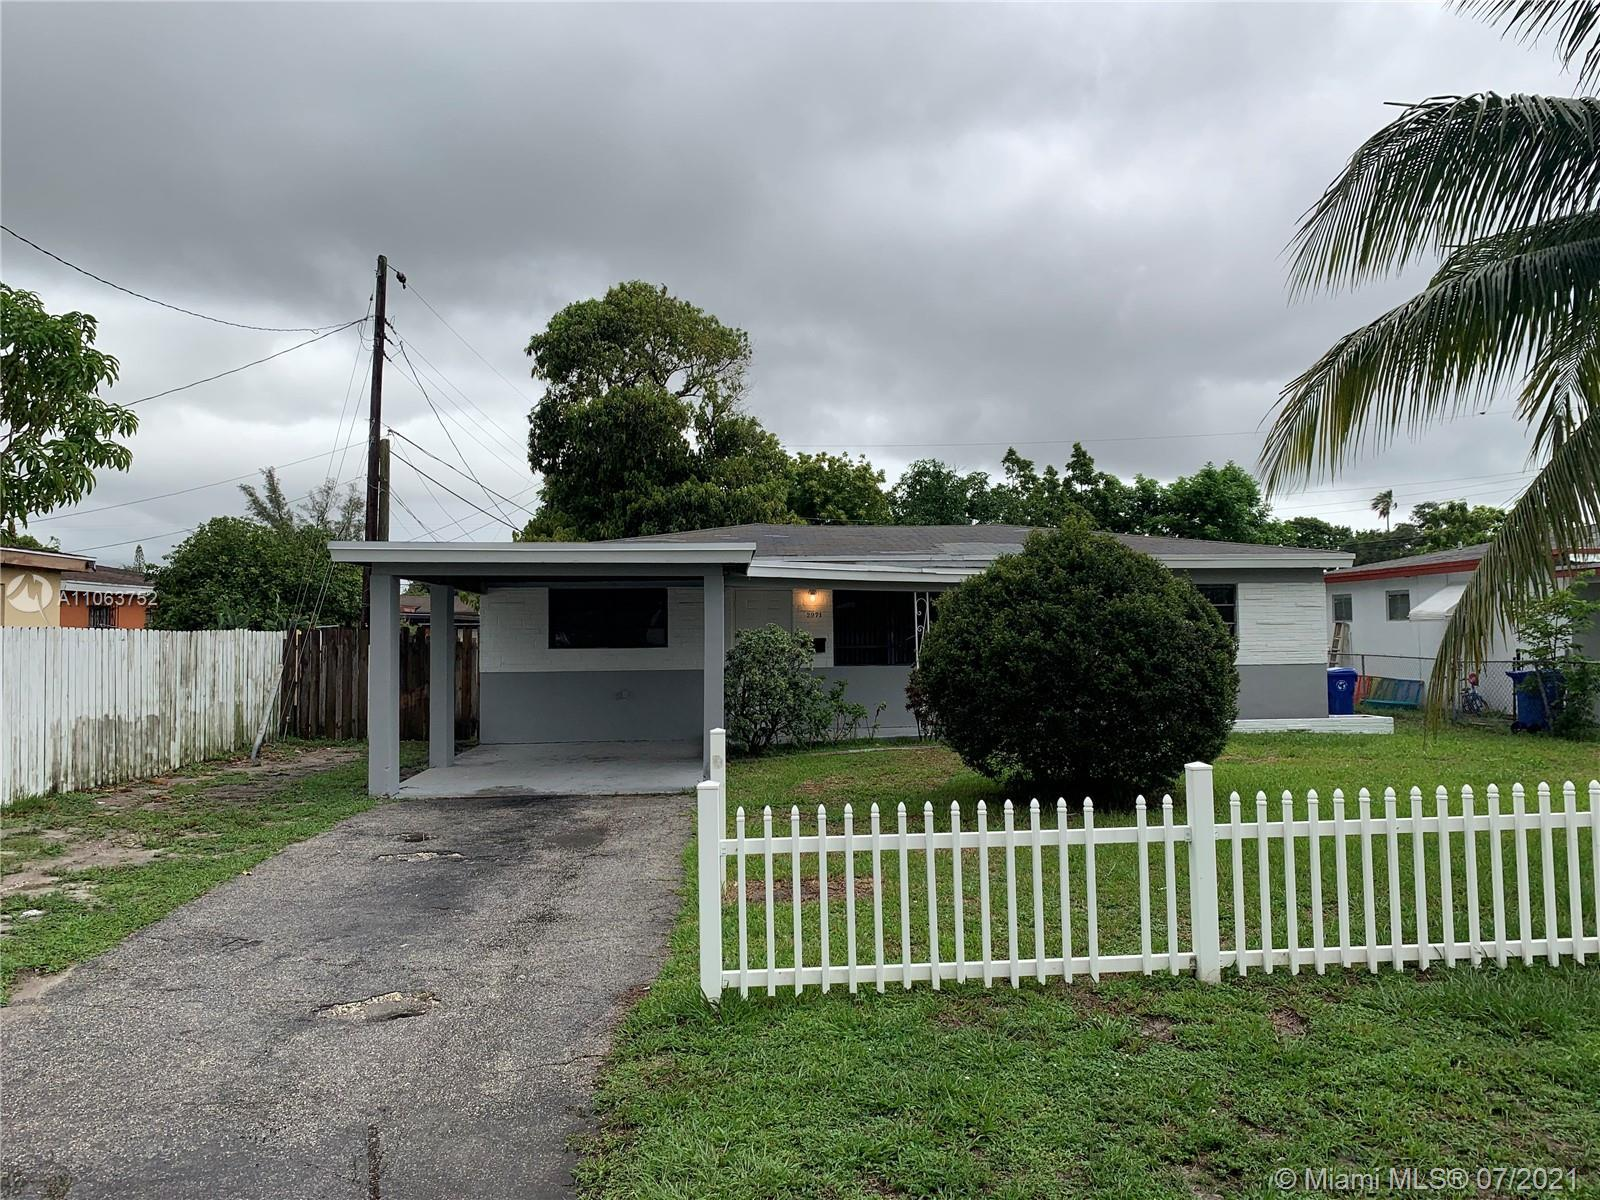 Great Location! Charming 3 Bedroom 2 Bathroom home on a quiet street with loads of curb appeal next